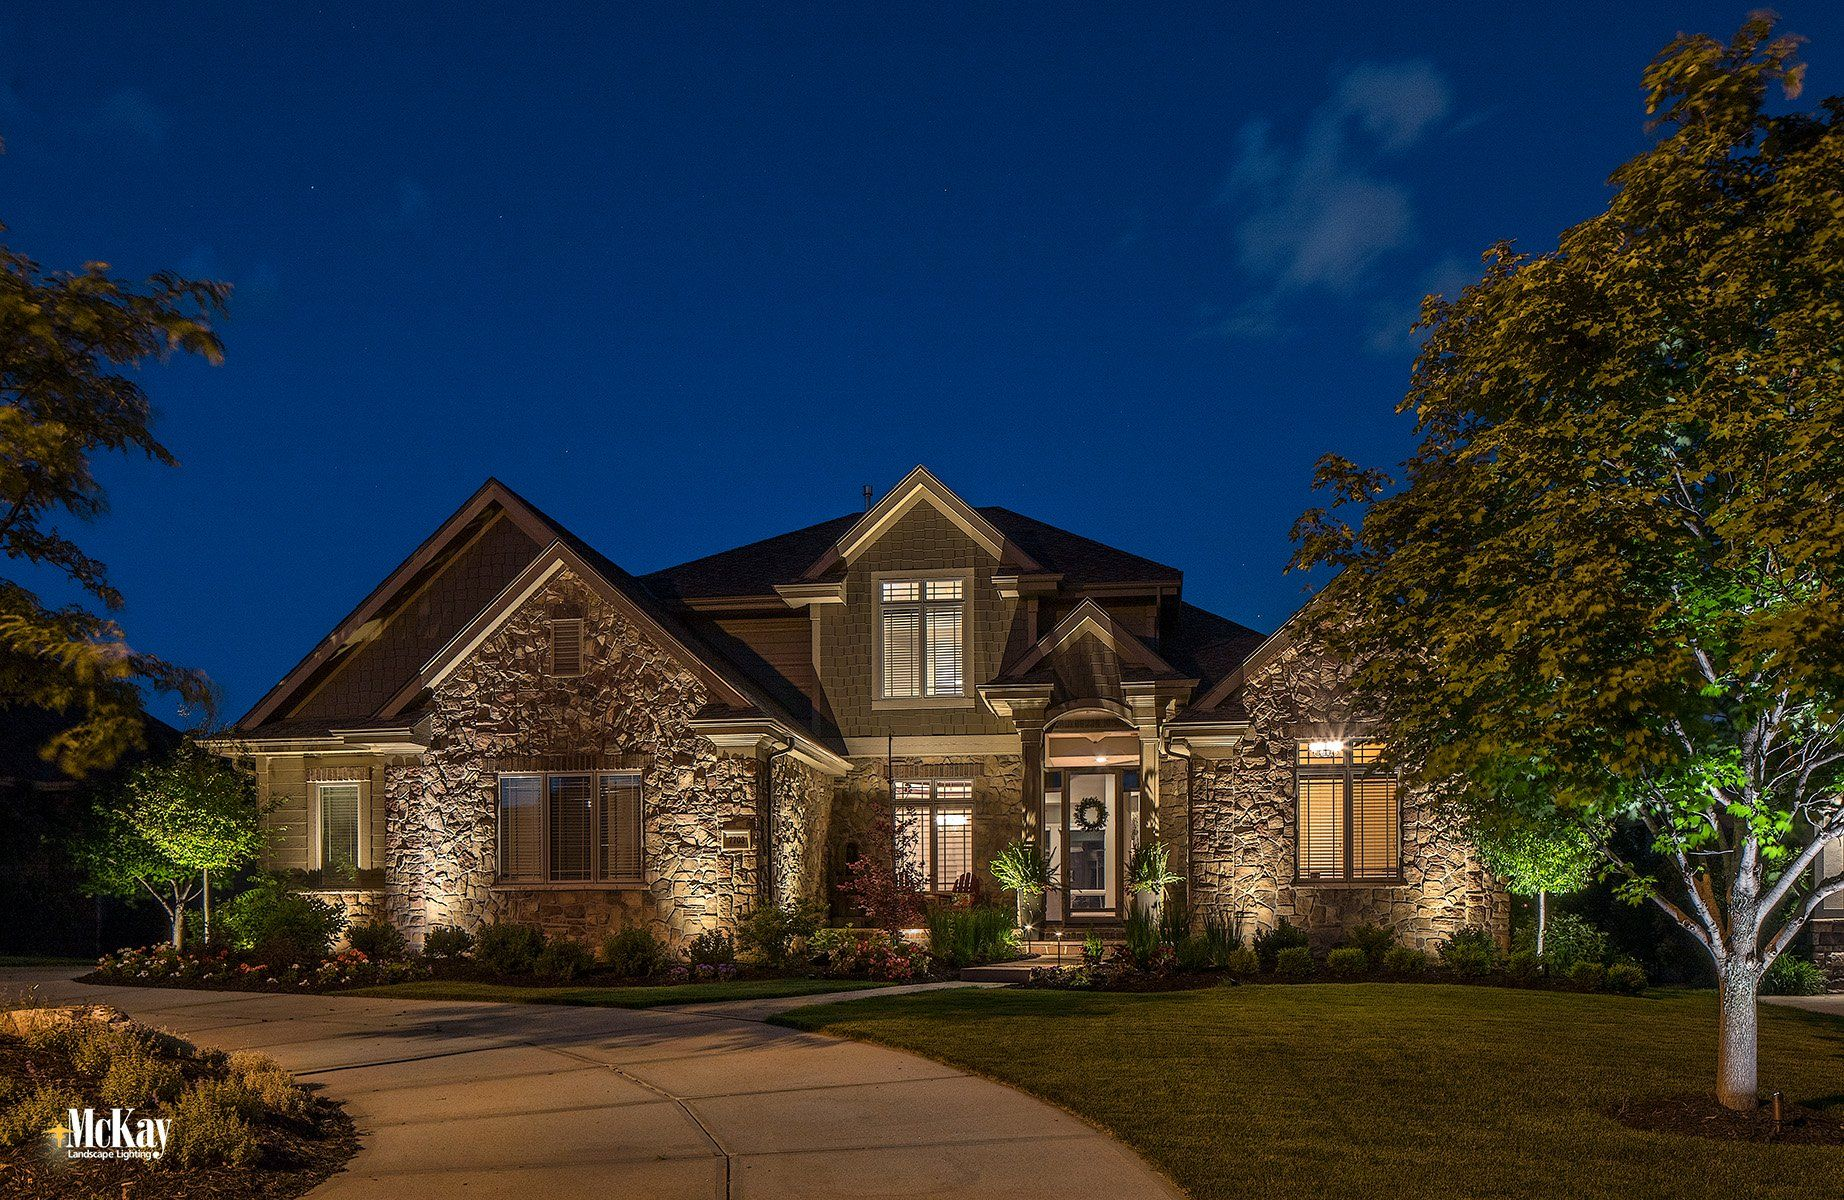 Protect Your Home With Exterior Lighting